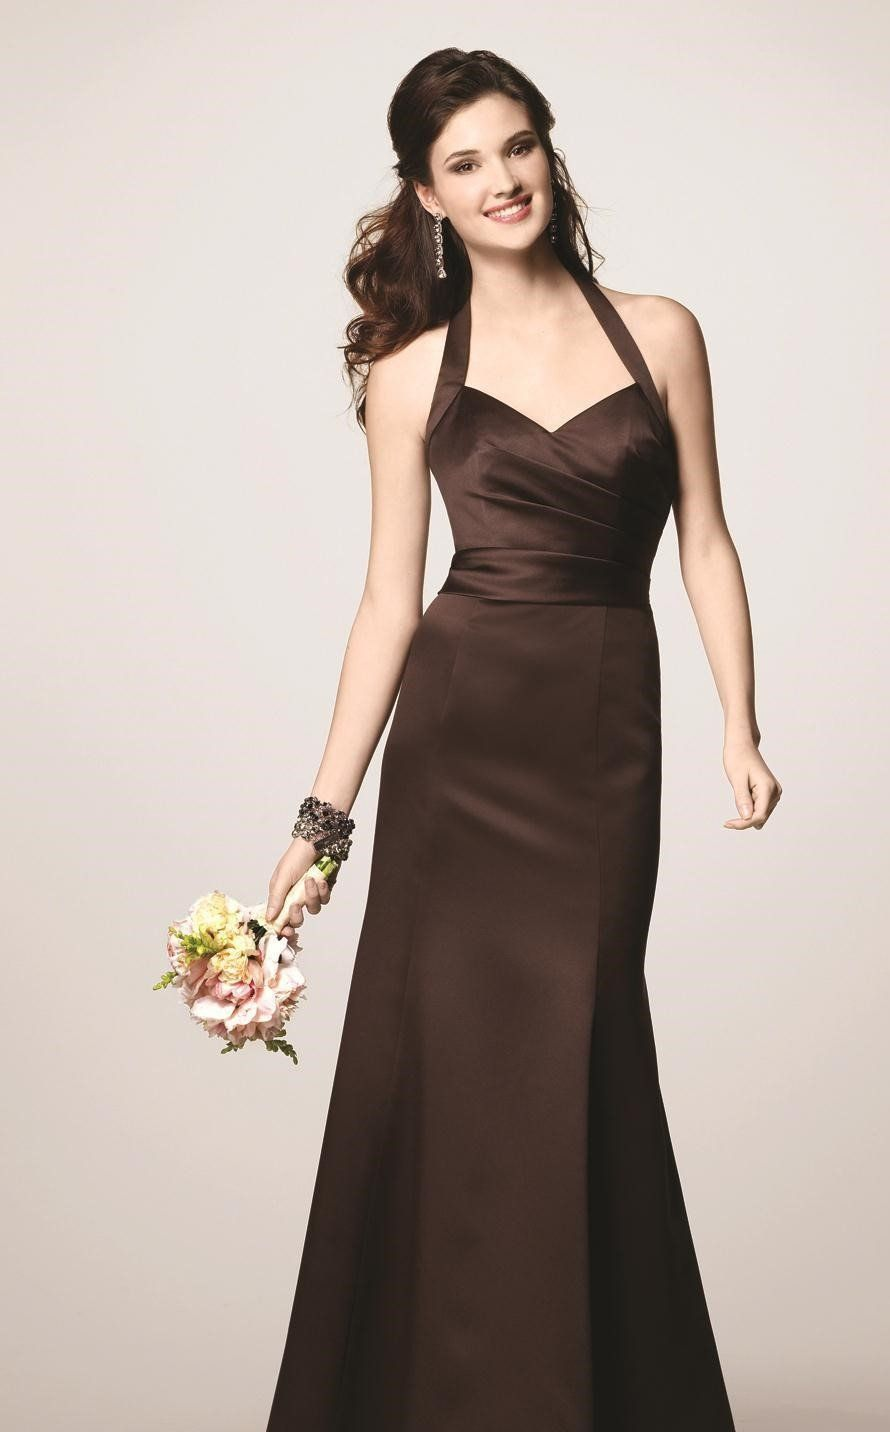 Alfred angelo 7142 chocolate brown size 12 halter bridesmaid dress alfred angelo 7142 chocolate brown size 12 halter bridesmaid dress ombrellifo Choice Image